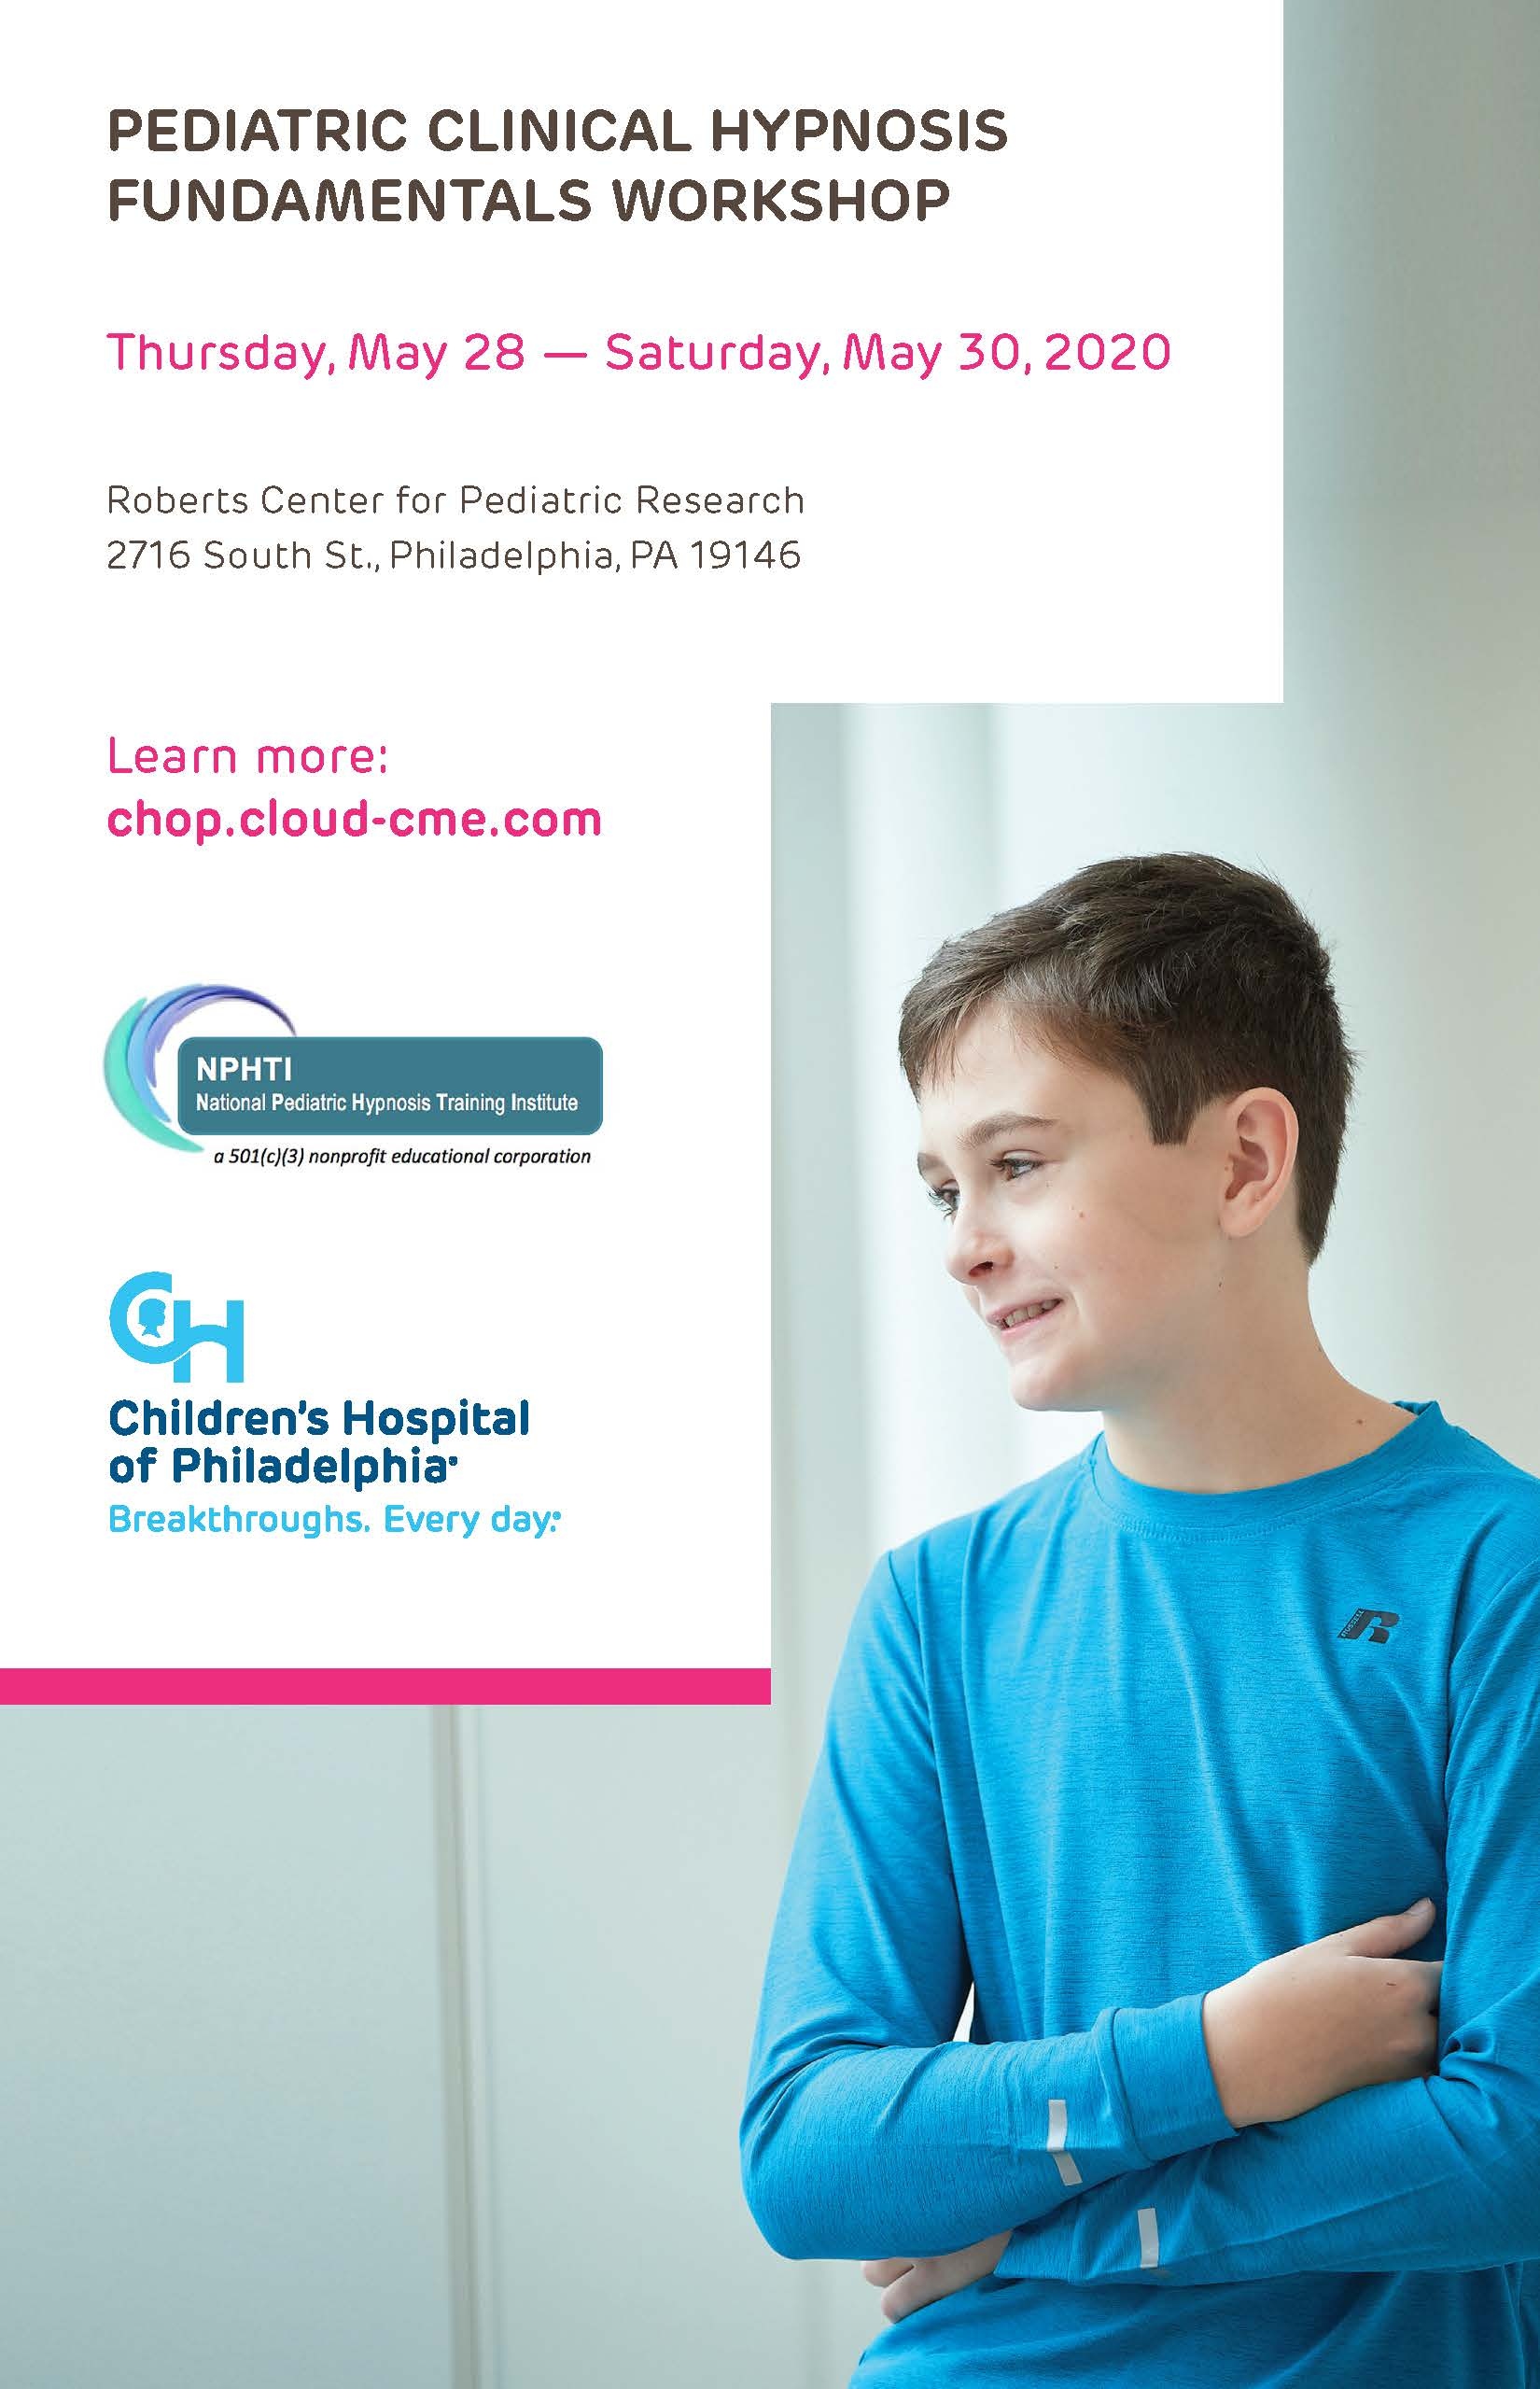 Pediatric Clinical Hypnosis Workshop: Fundamentals of Pediatric Clinical Hypnosis Banner